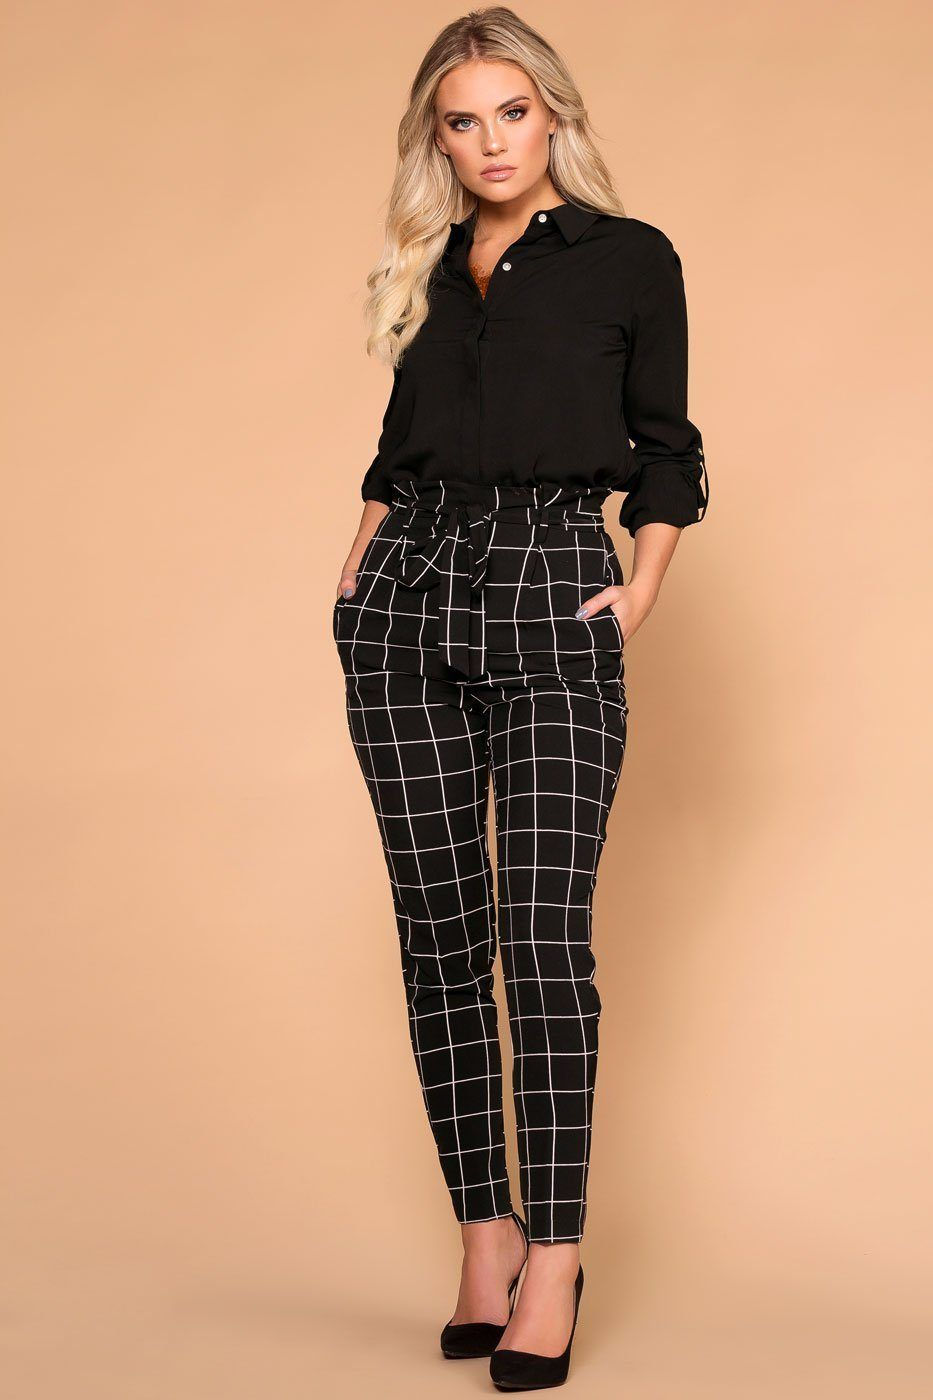 7a37c3494d91 Shawna Black Tie-Front Checked Paperbag High Waisted Pants in 2019 ...